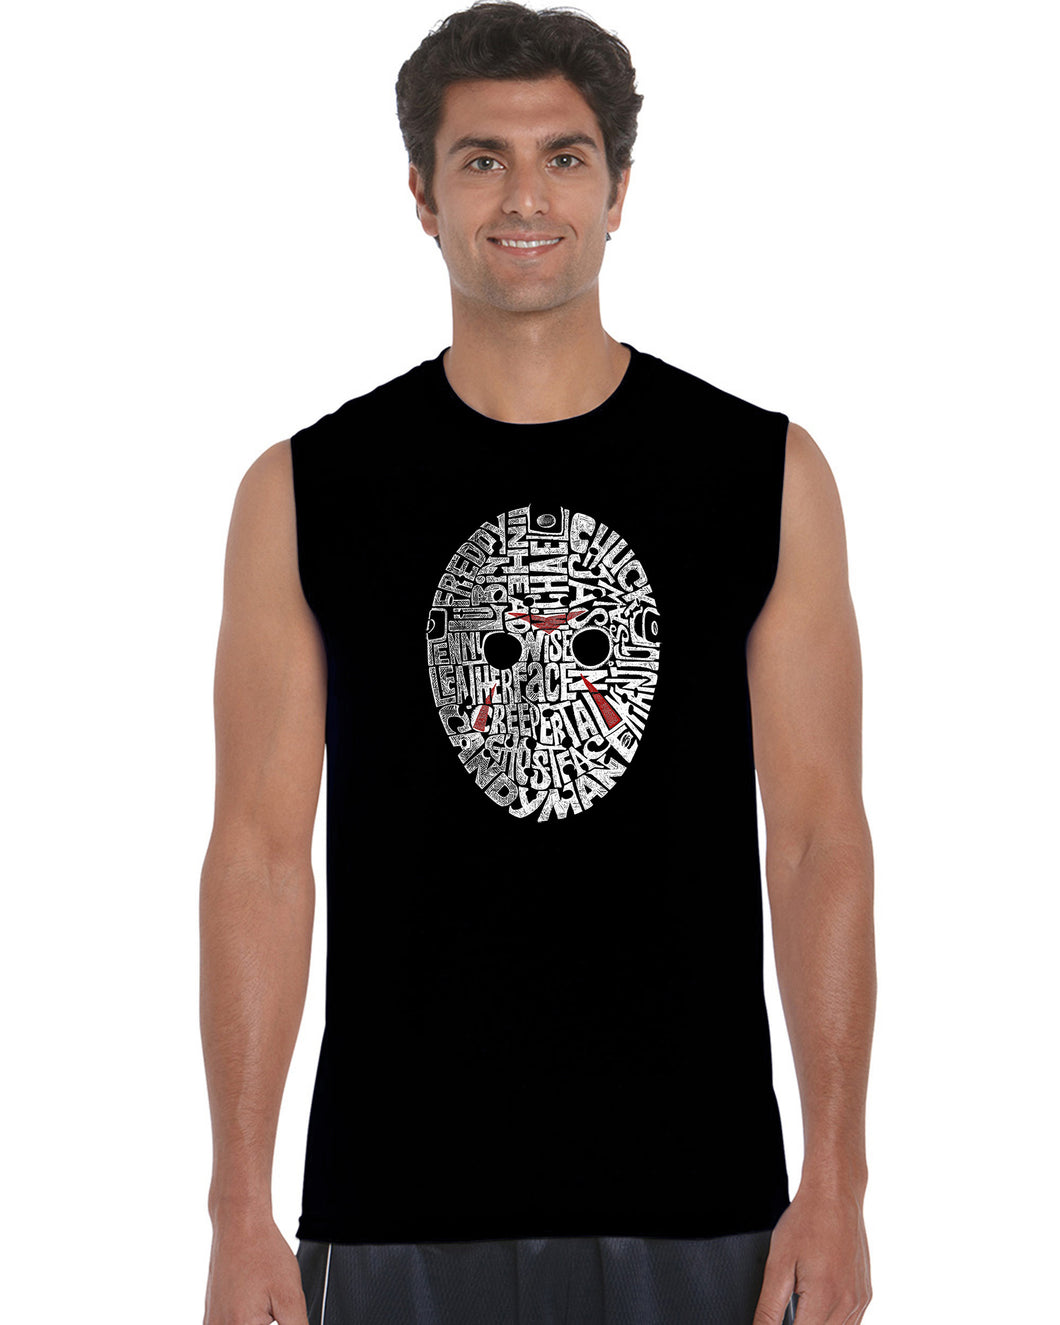 LA Pop Art Men's Word Art Sleeveless T-shirt - Slasher Movie Villians